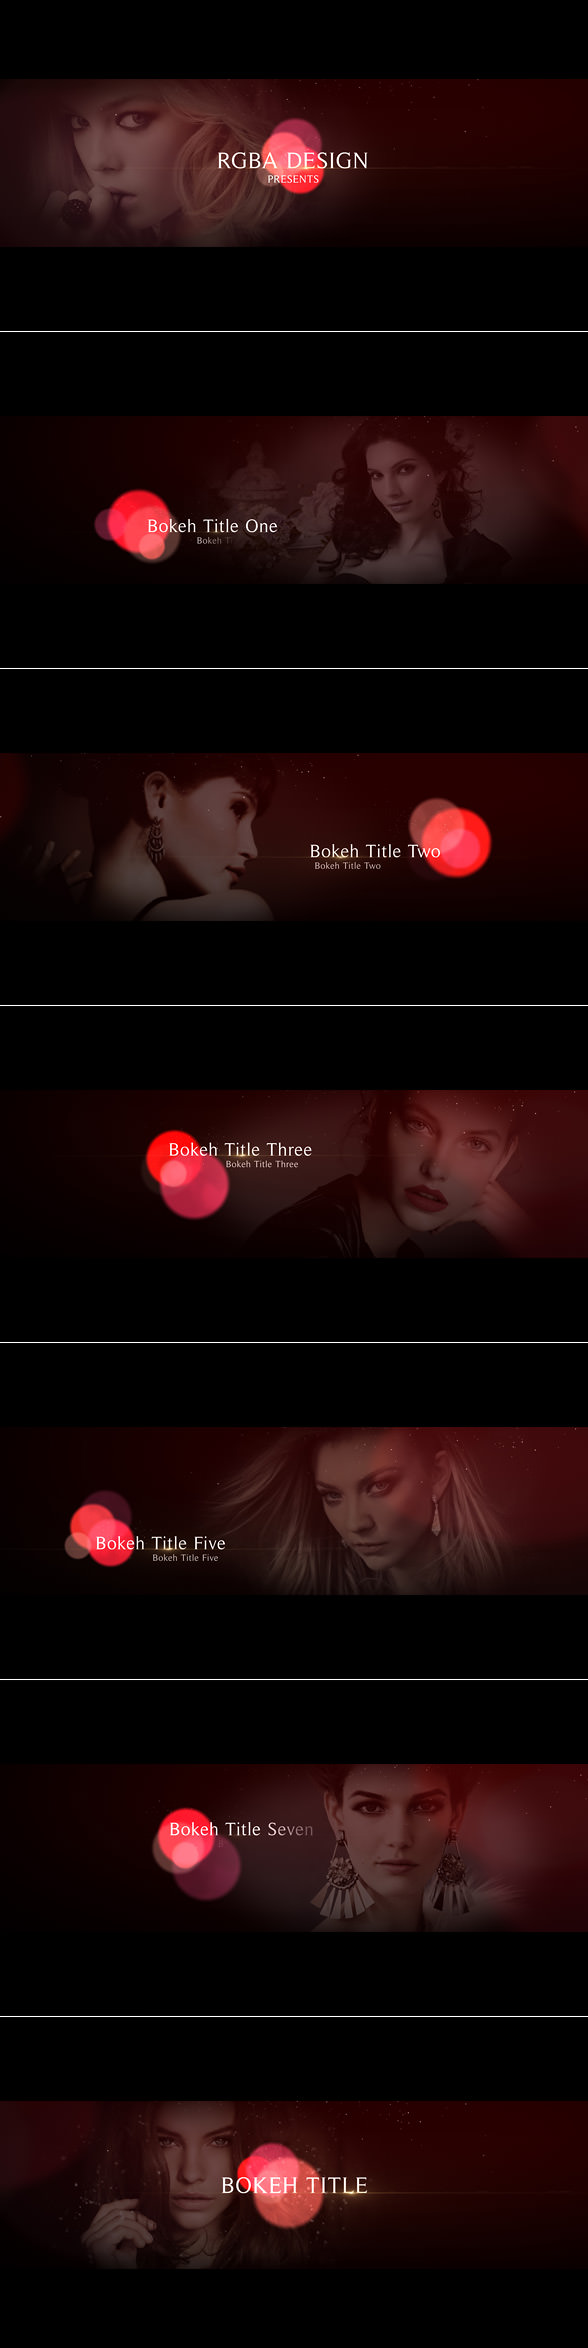 Bokeh Titles After Effects Template elegant bokeh titles project, perfect for movie / TV titles, promo, special event, wedding, fashion / photography slideshow